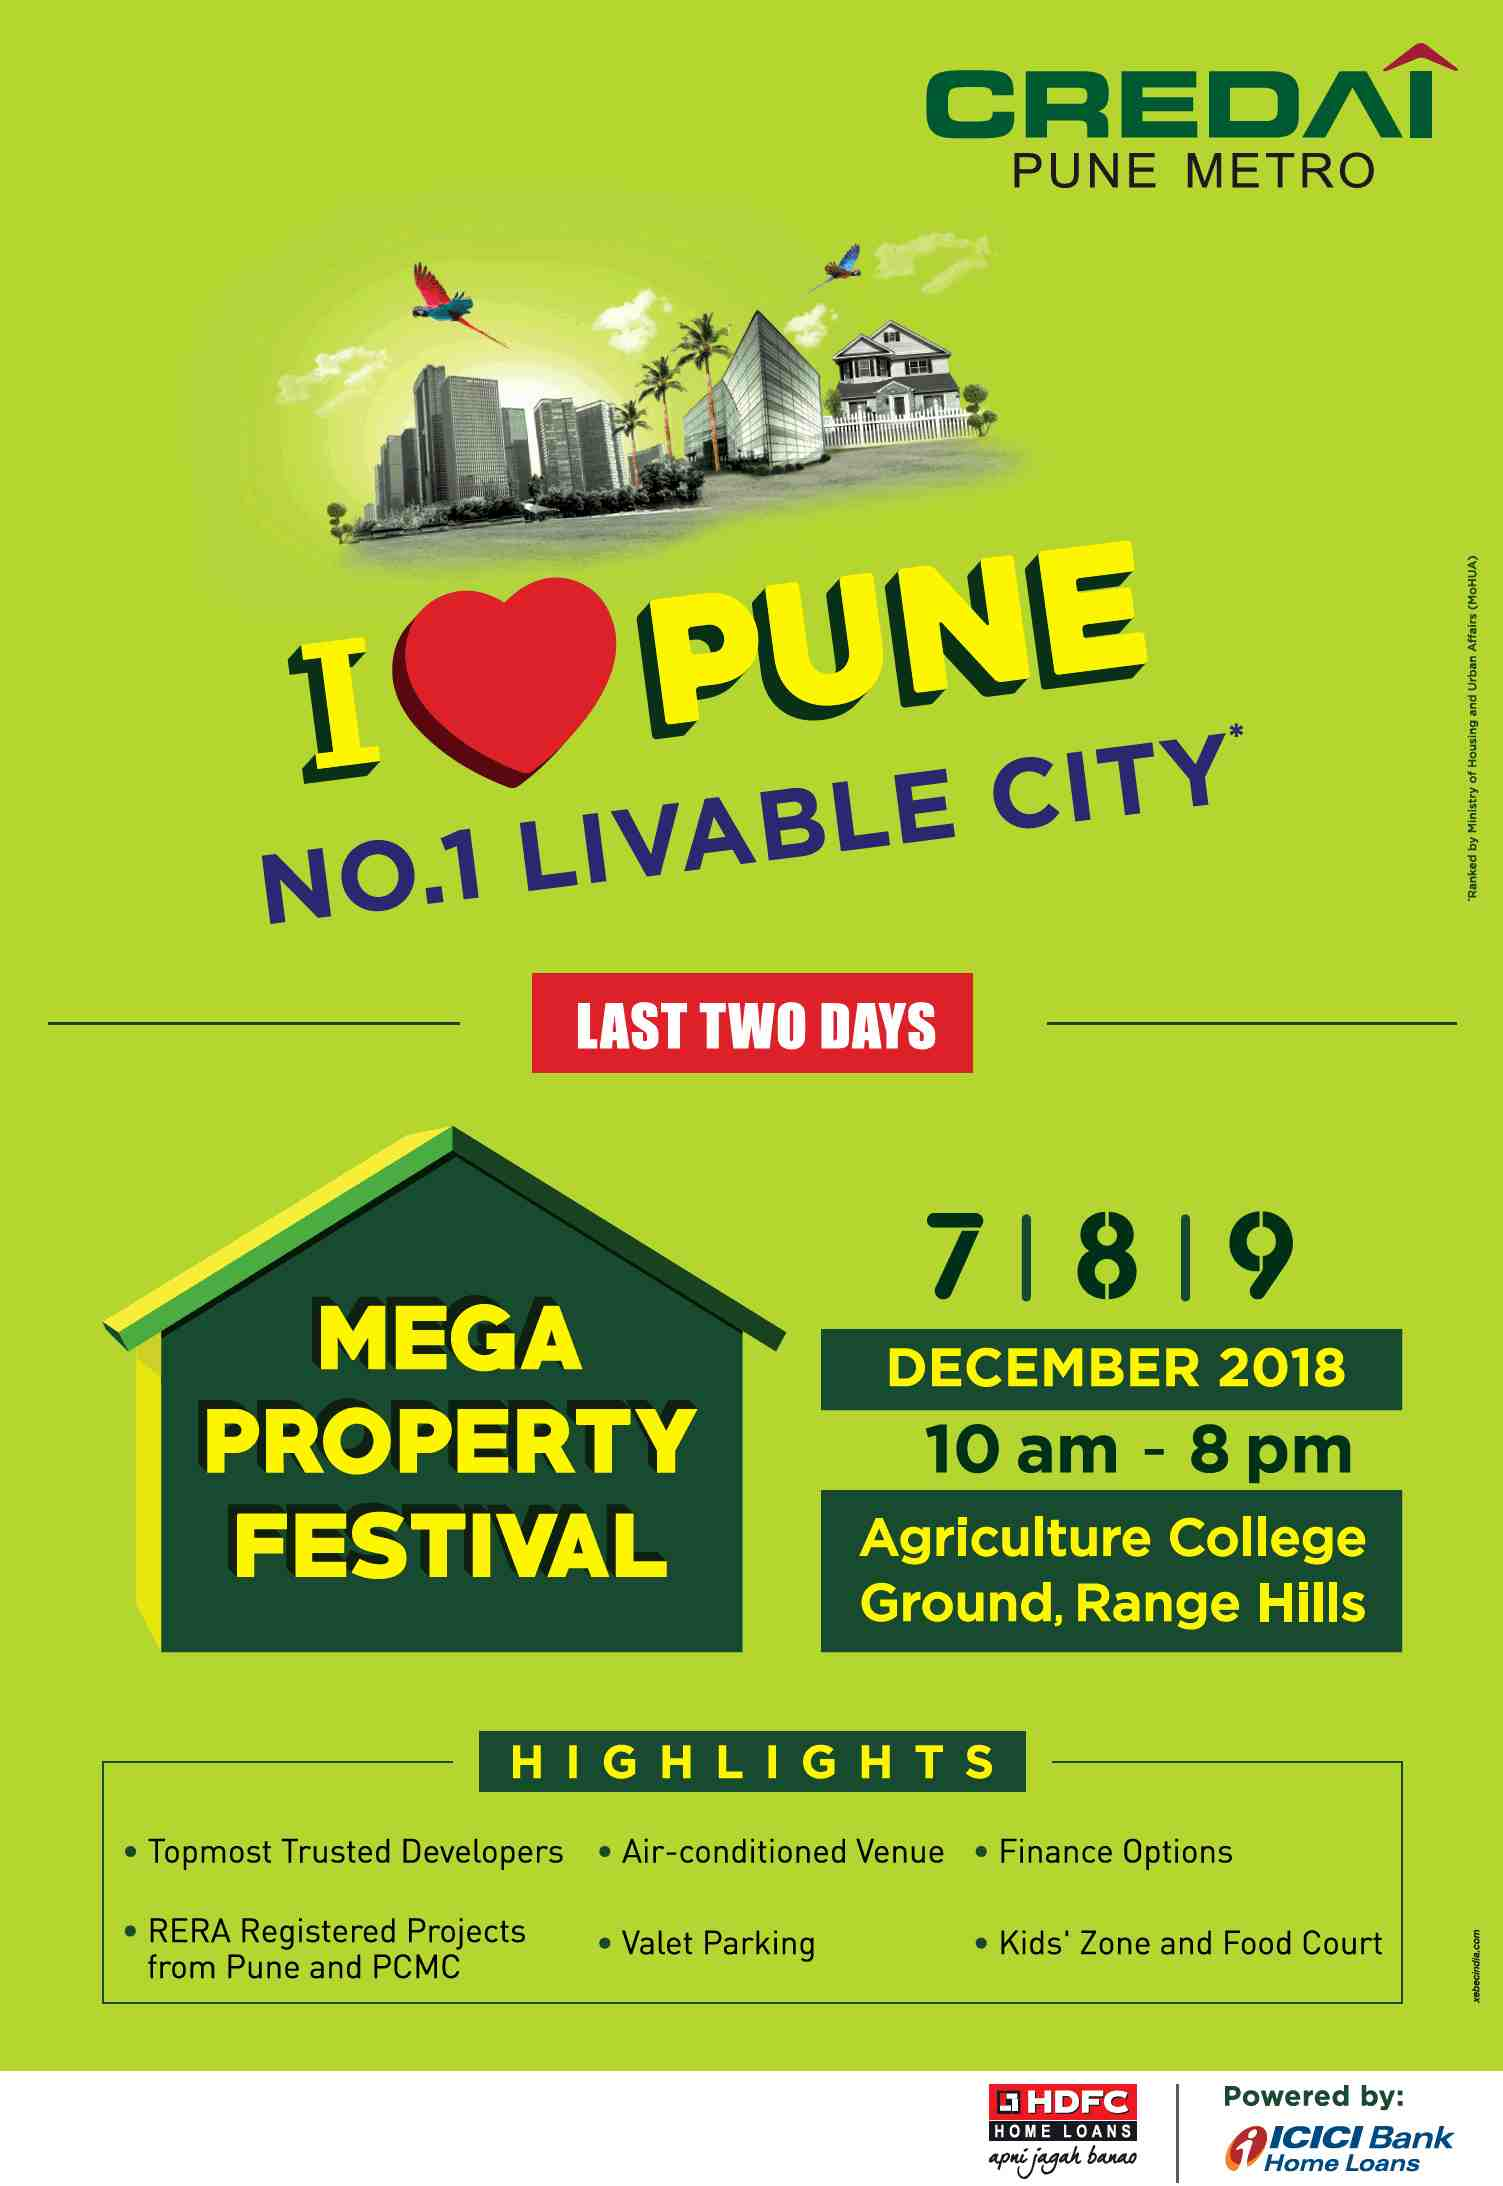 CREDAI presents Mega Property Festival 2018 in Pune